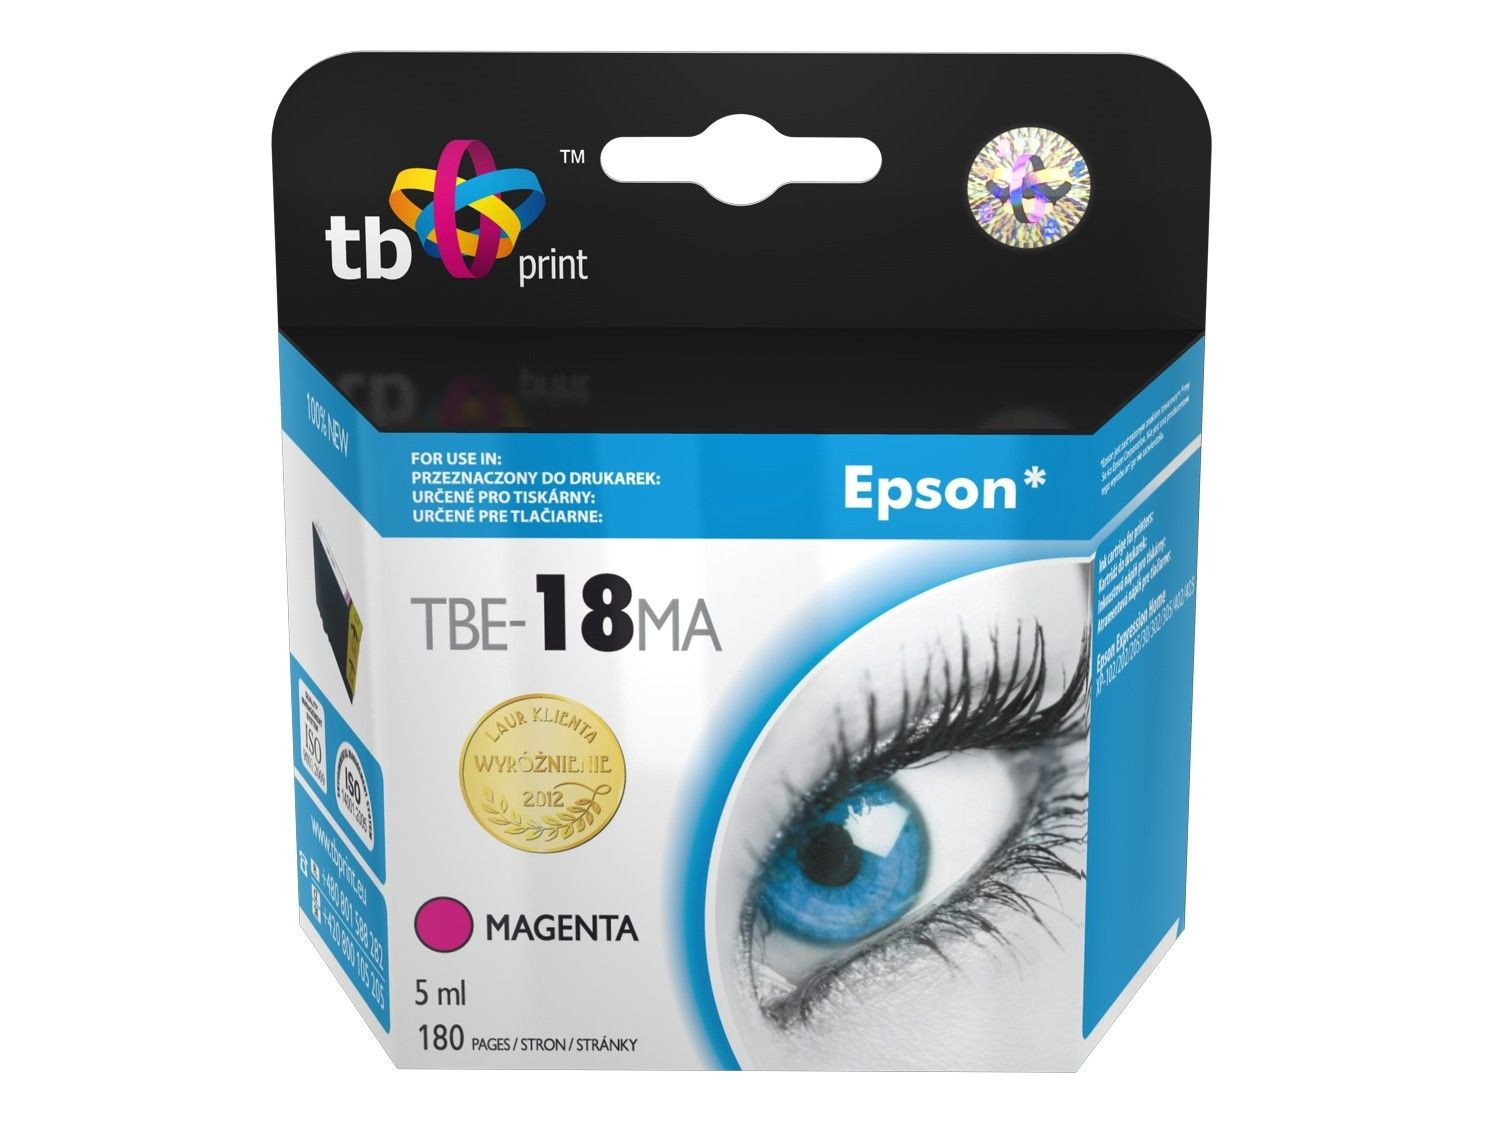 TB Print Tusz do Epson XP 302 TBE-18MA MA